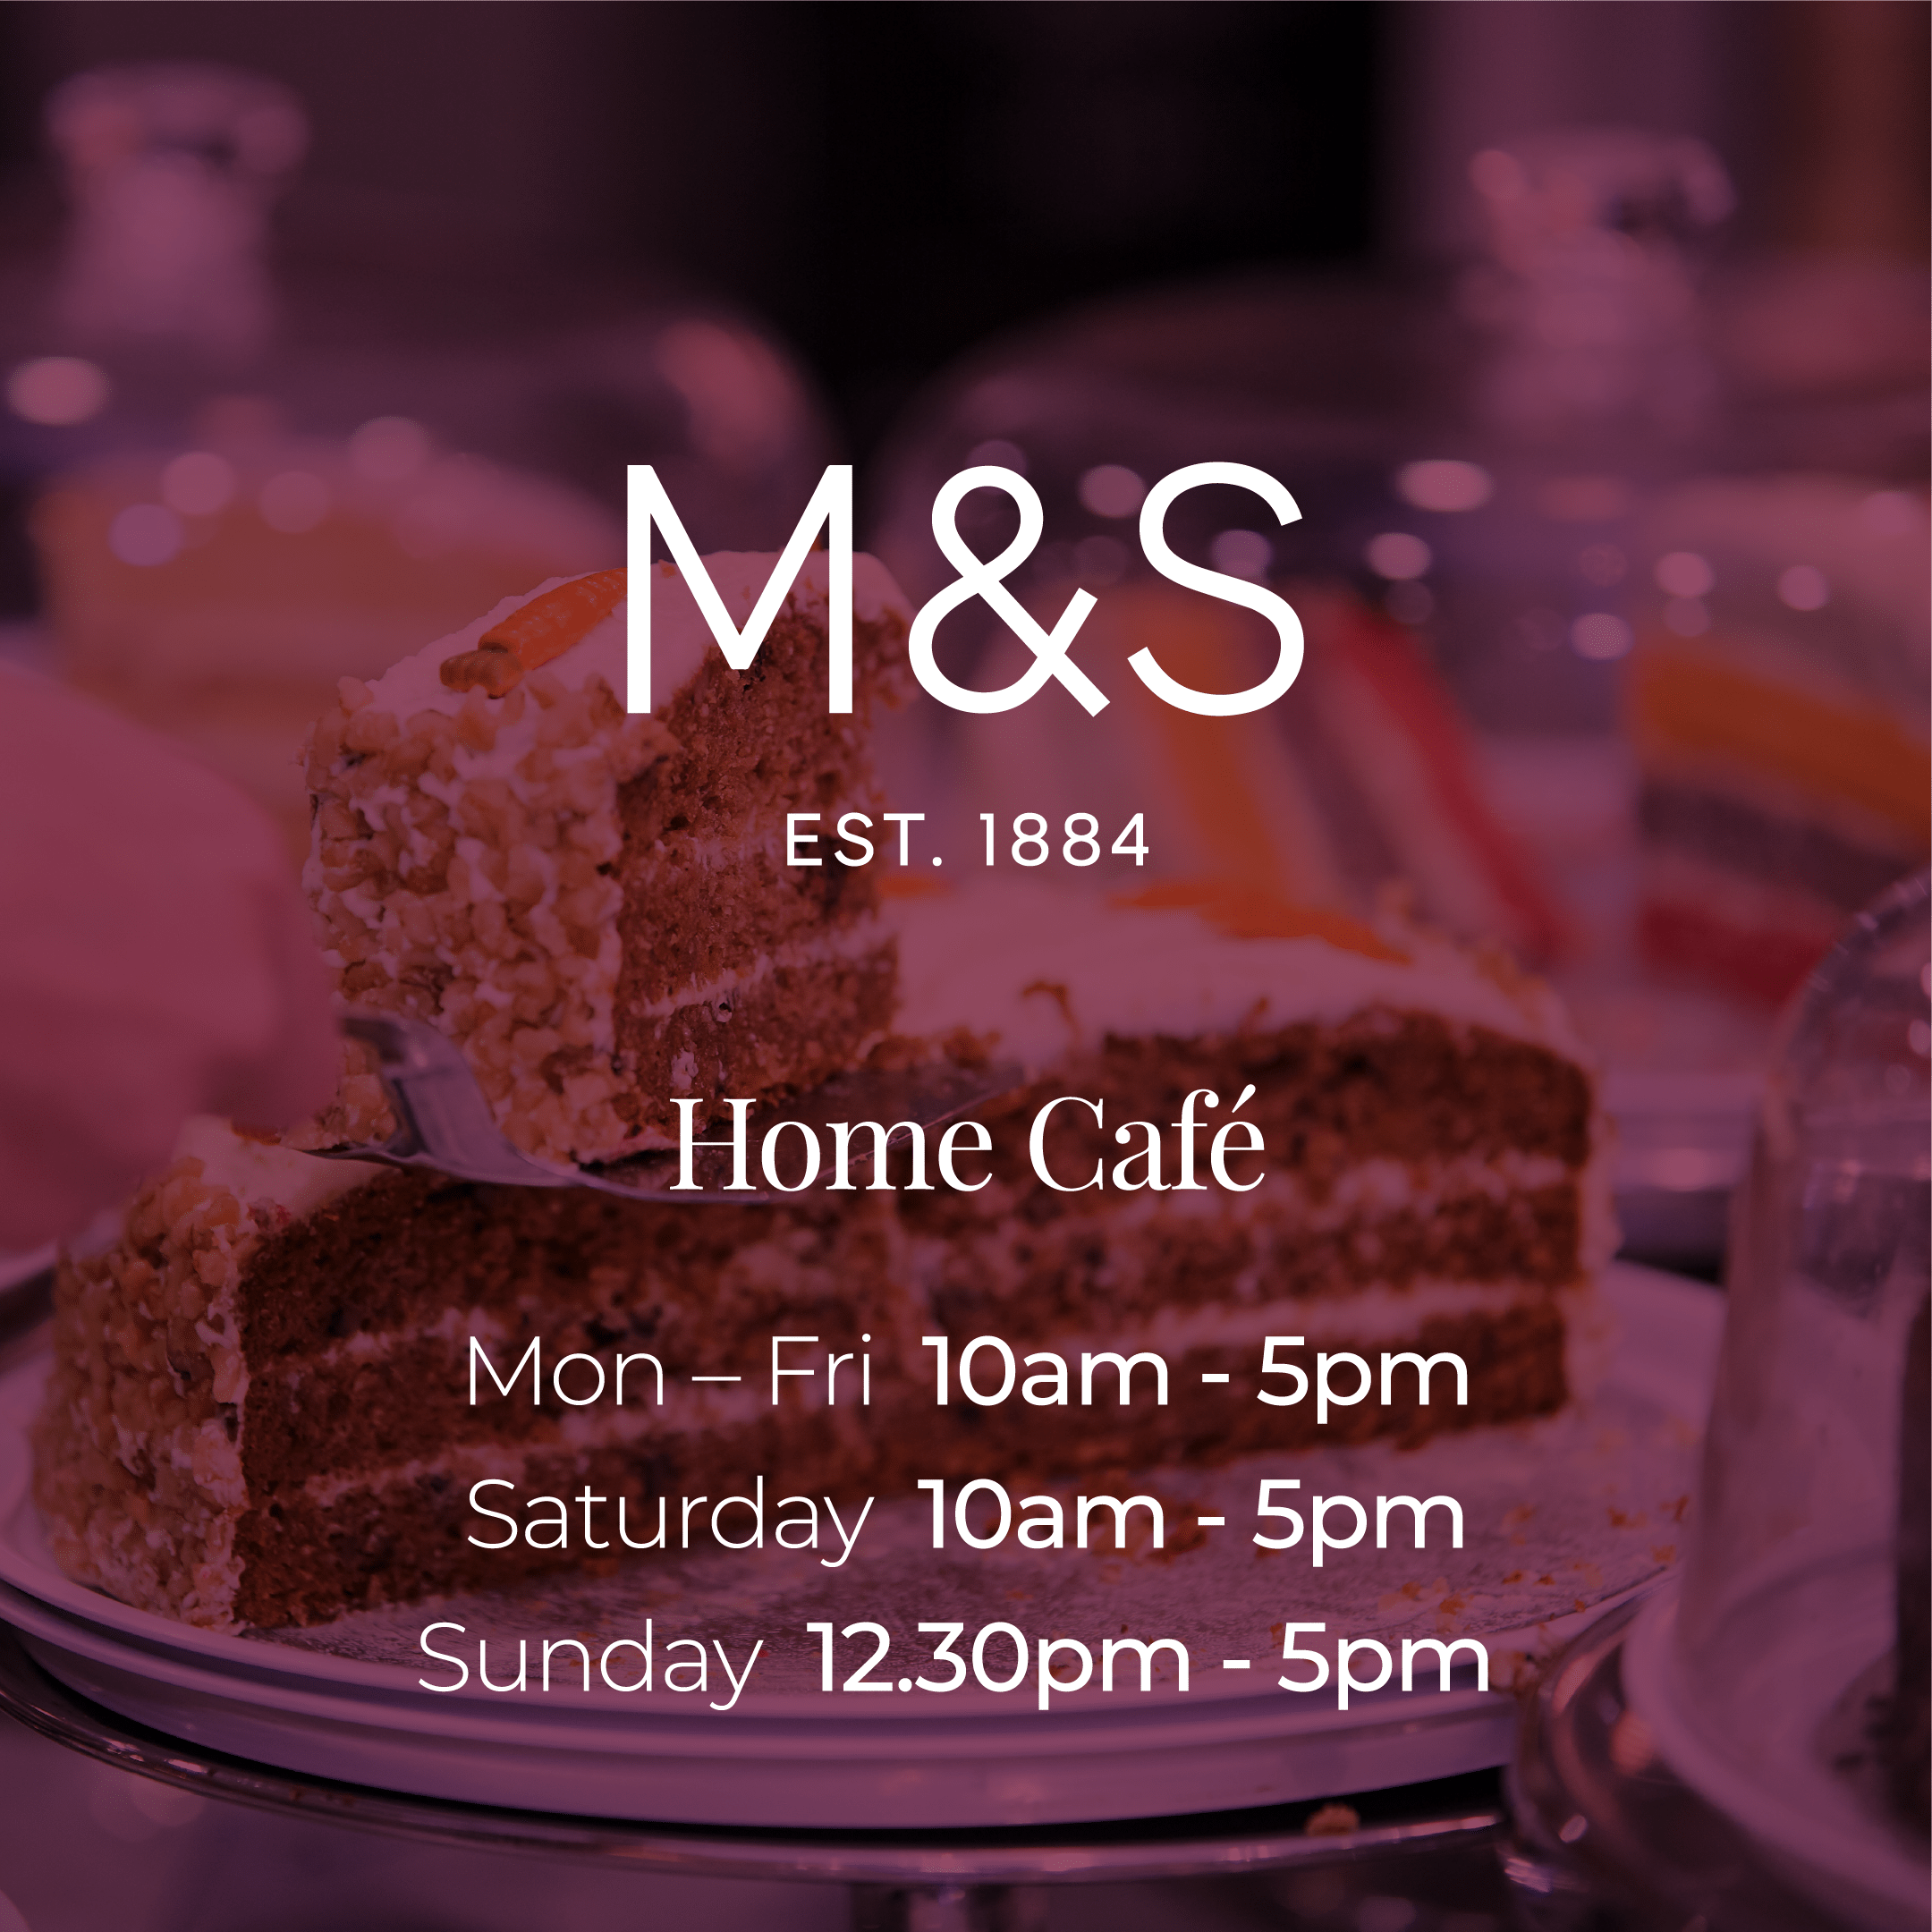 M&S Home Cafe Opening Hours